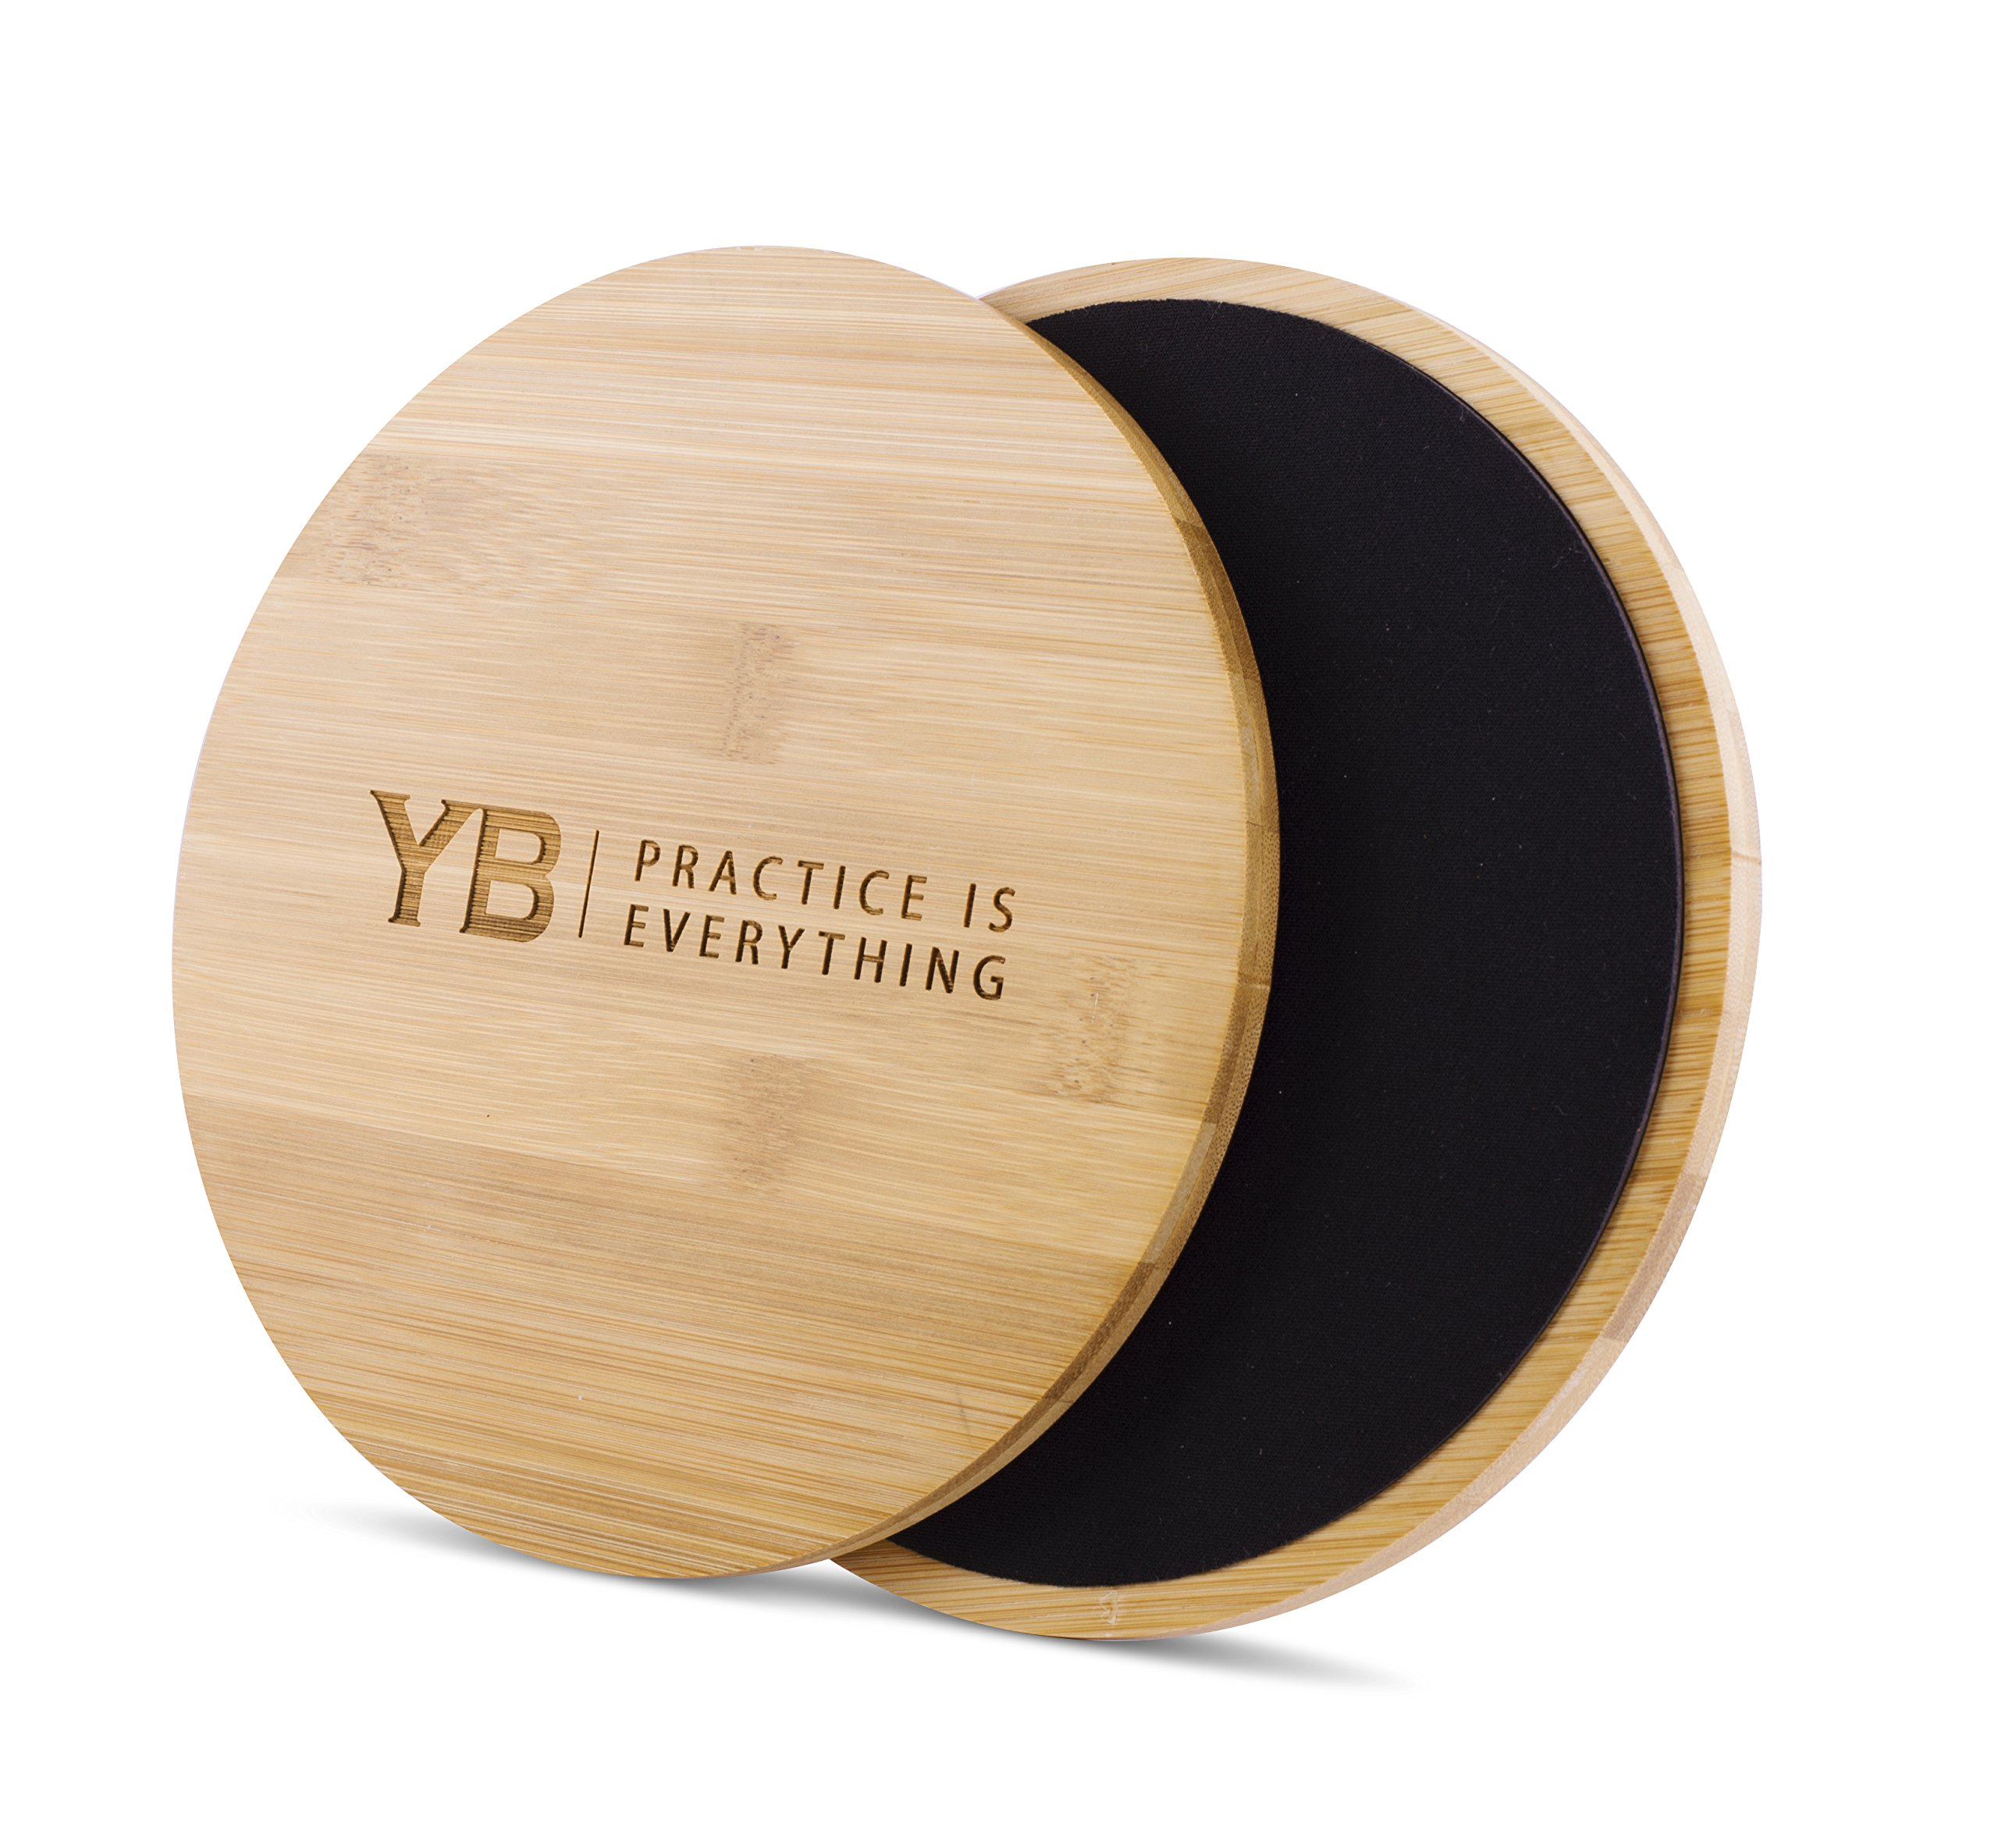 YOGABODY Abdominal Exercise Sliders Beautiful Bamboo Wood | Use for Workouts on Hardwood Floors, Tiles or Carpet | Core Strength Trainers